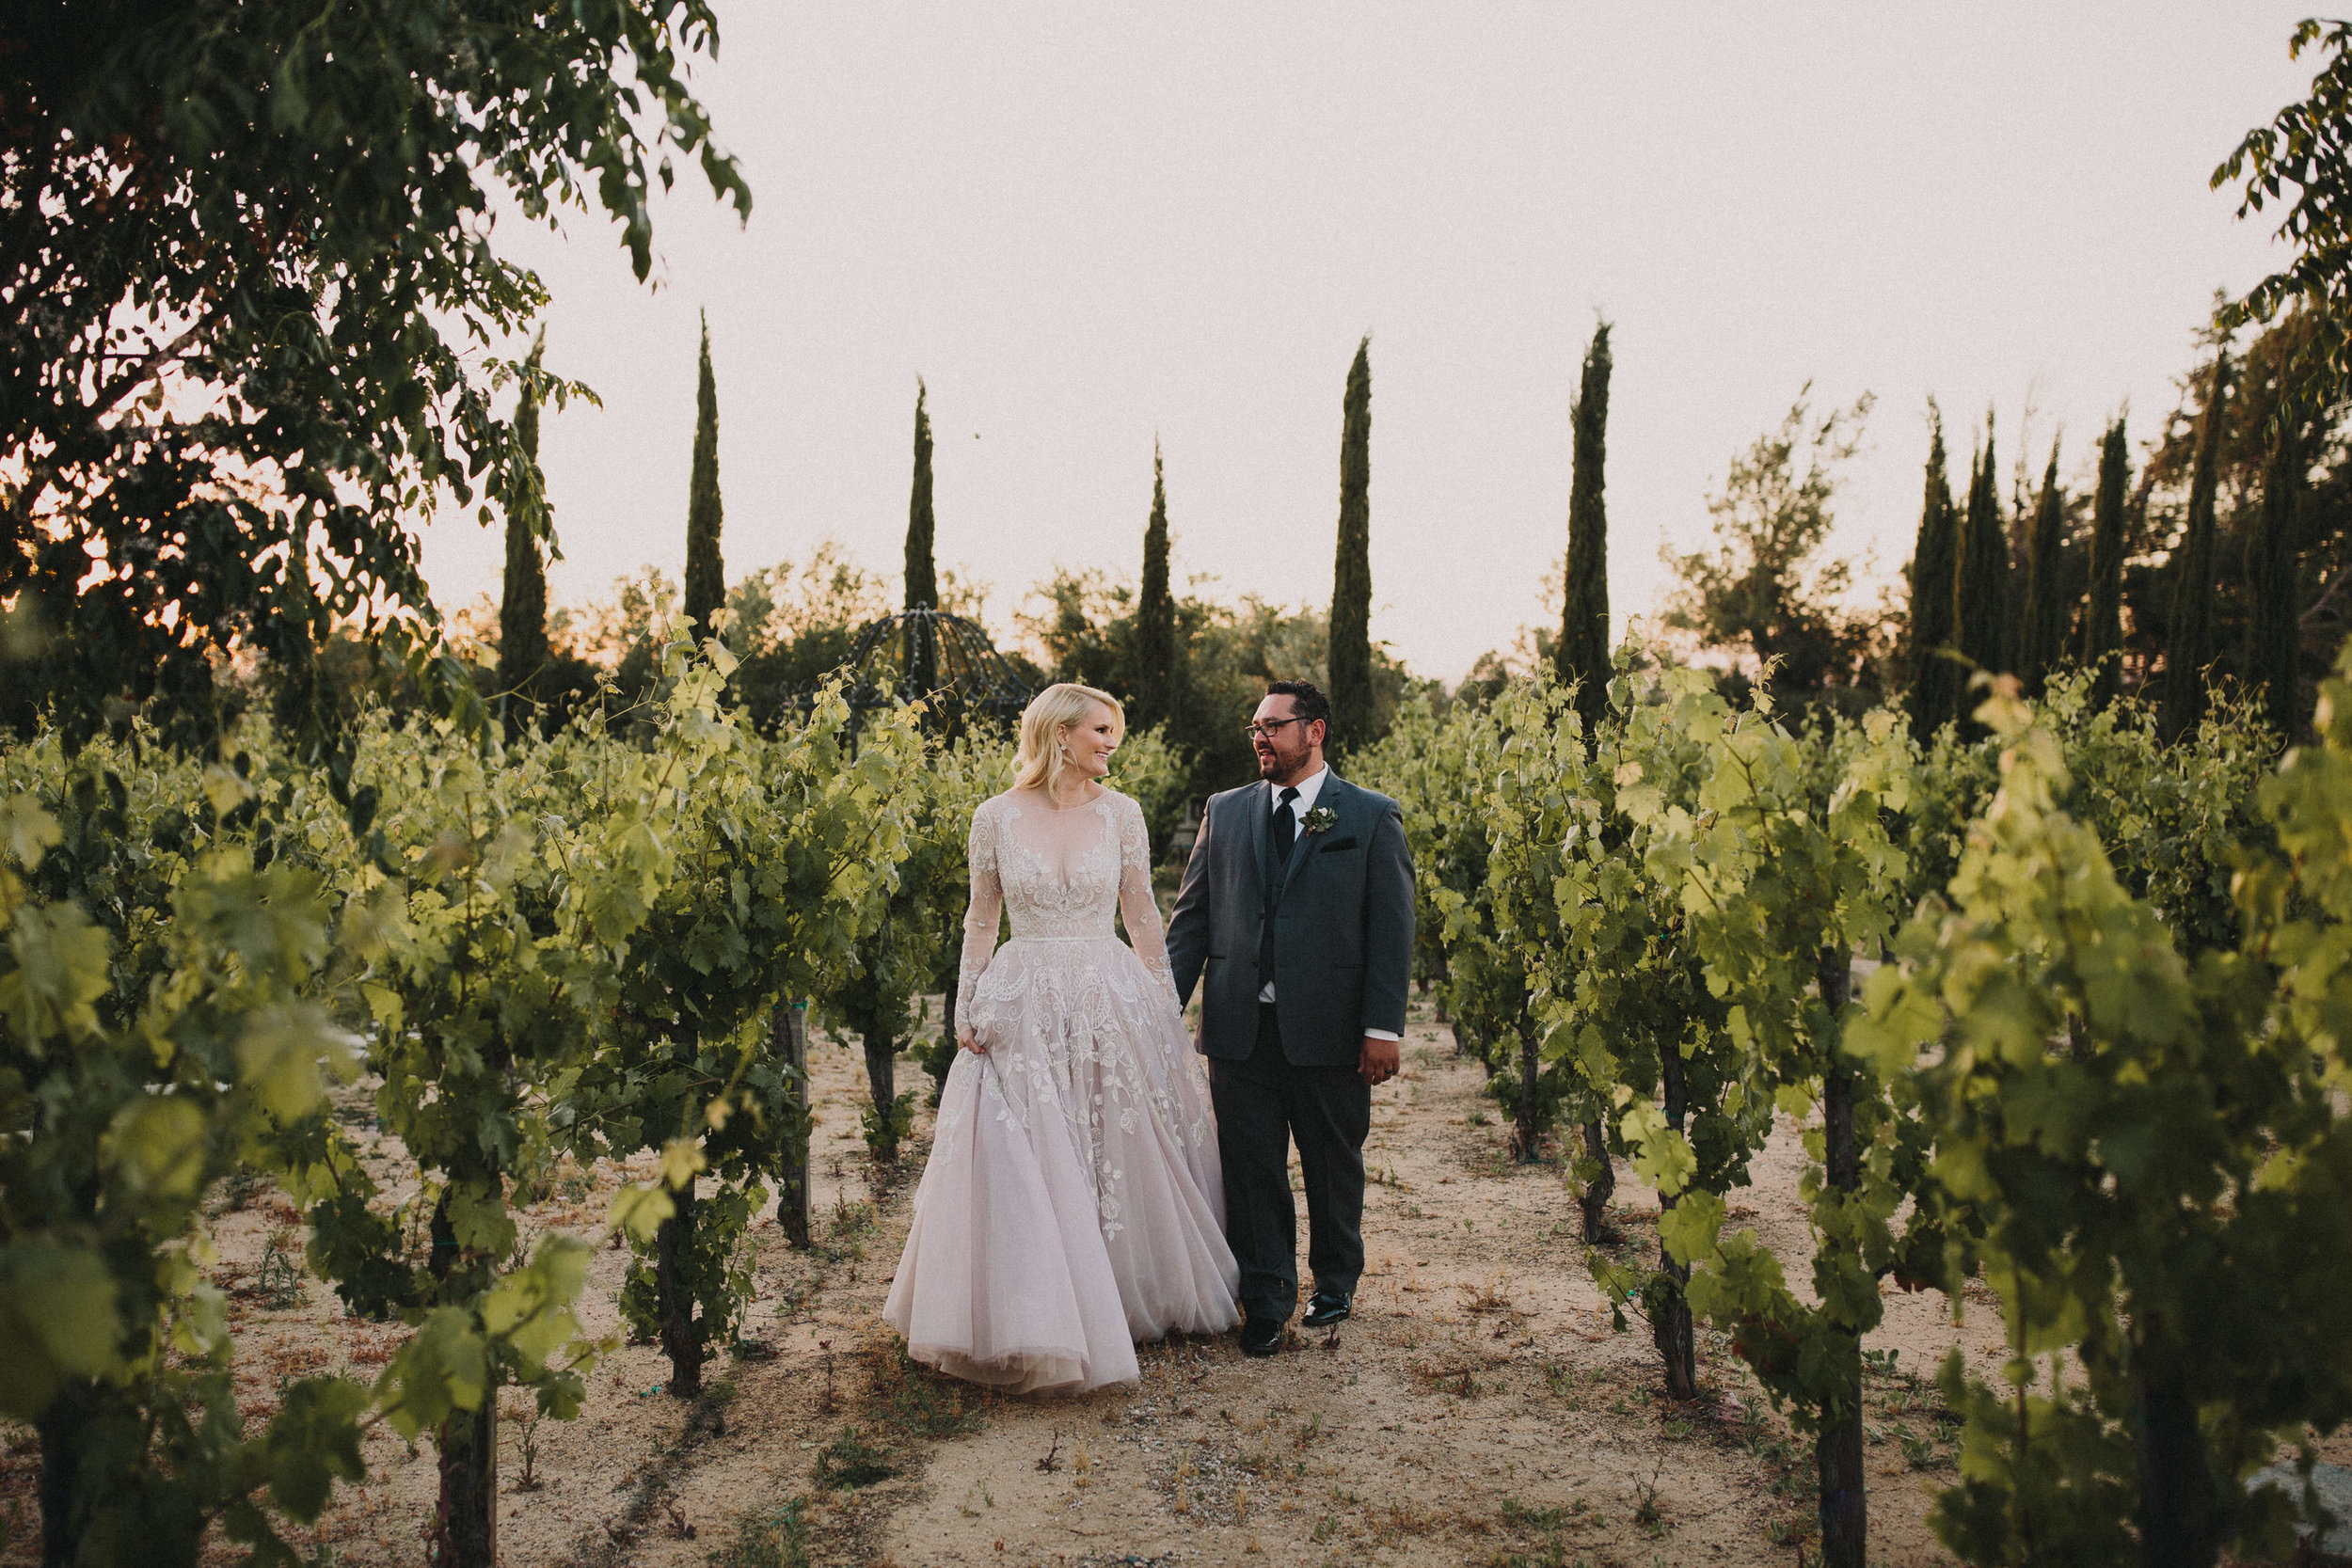 Stephanie + Charles - Mount Palomar Winery Wedding-57.jpg